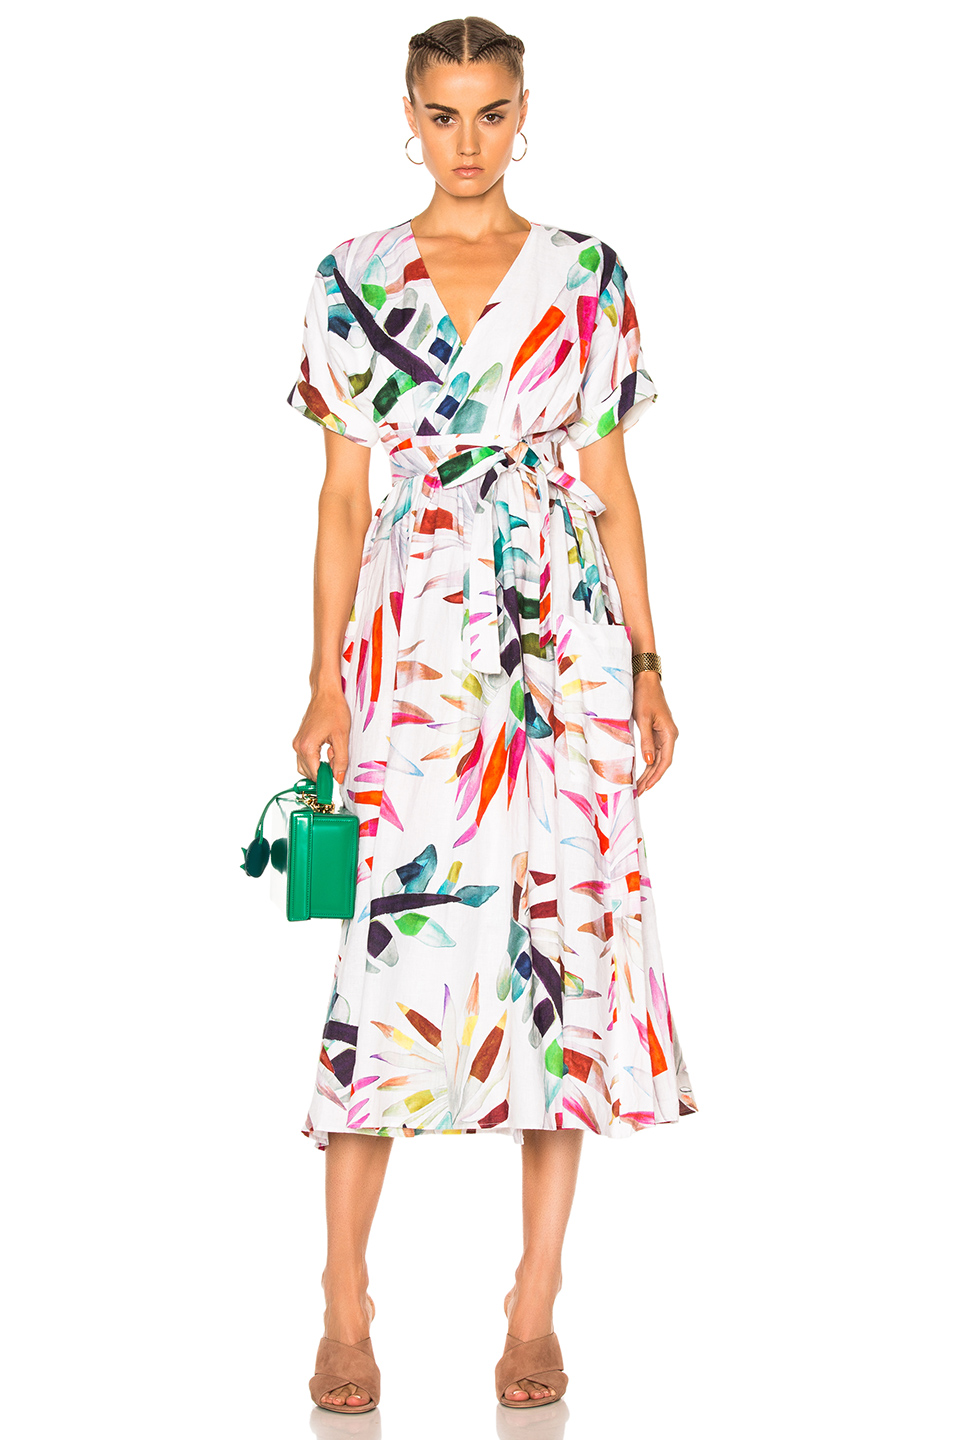 Mara Hoffman Midi Wrap Dress in Abstract,Floral,White